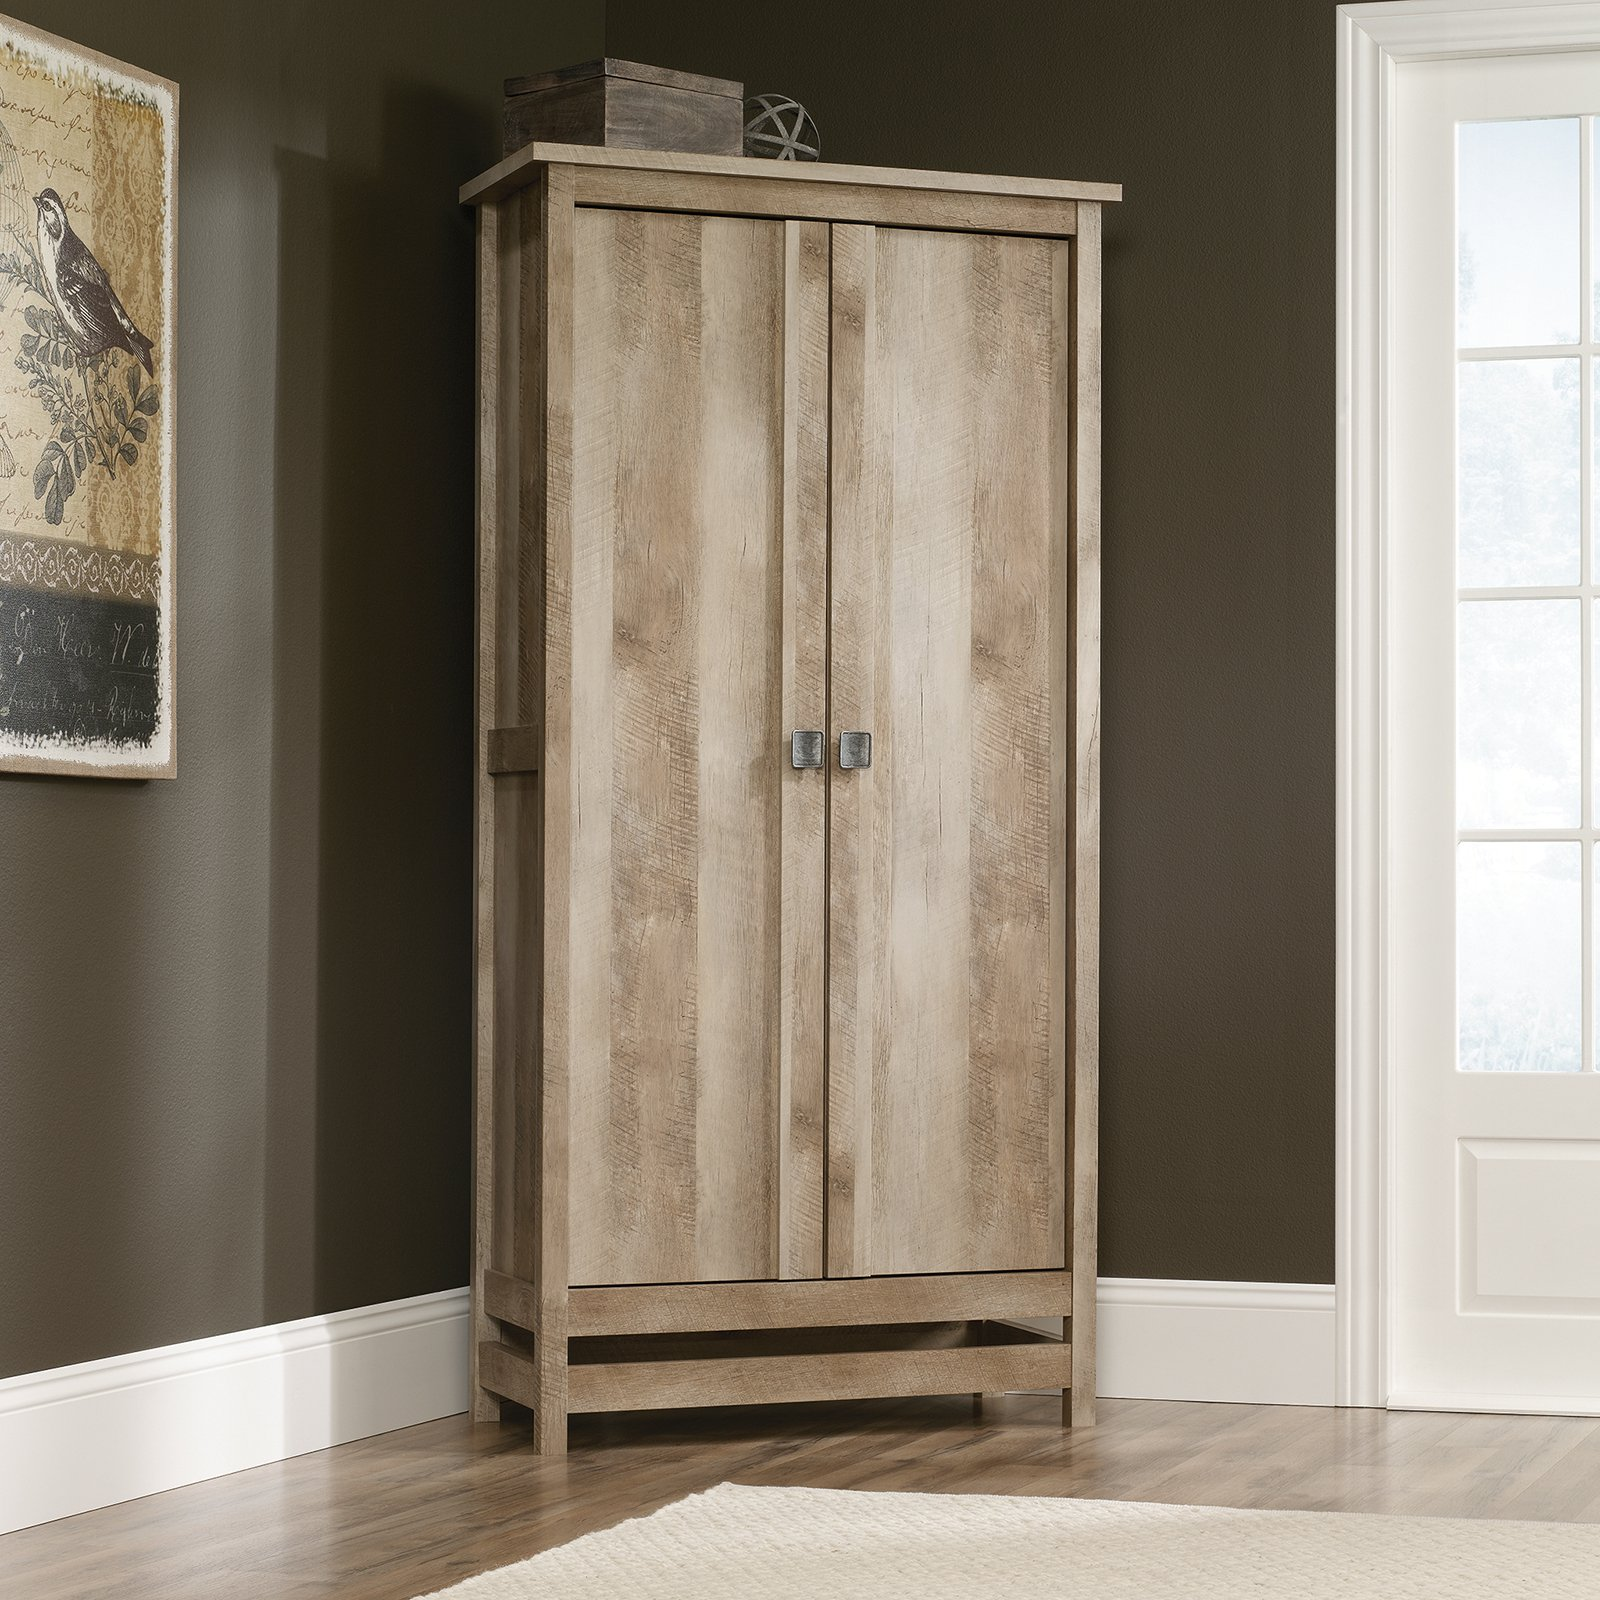 Cannery Bridge Storage Cabinet Armoire - Lintel Oak